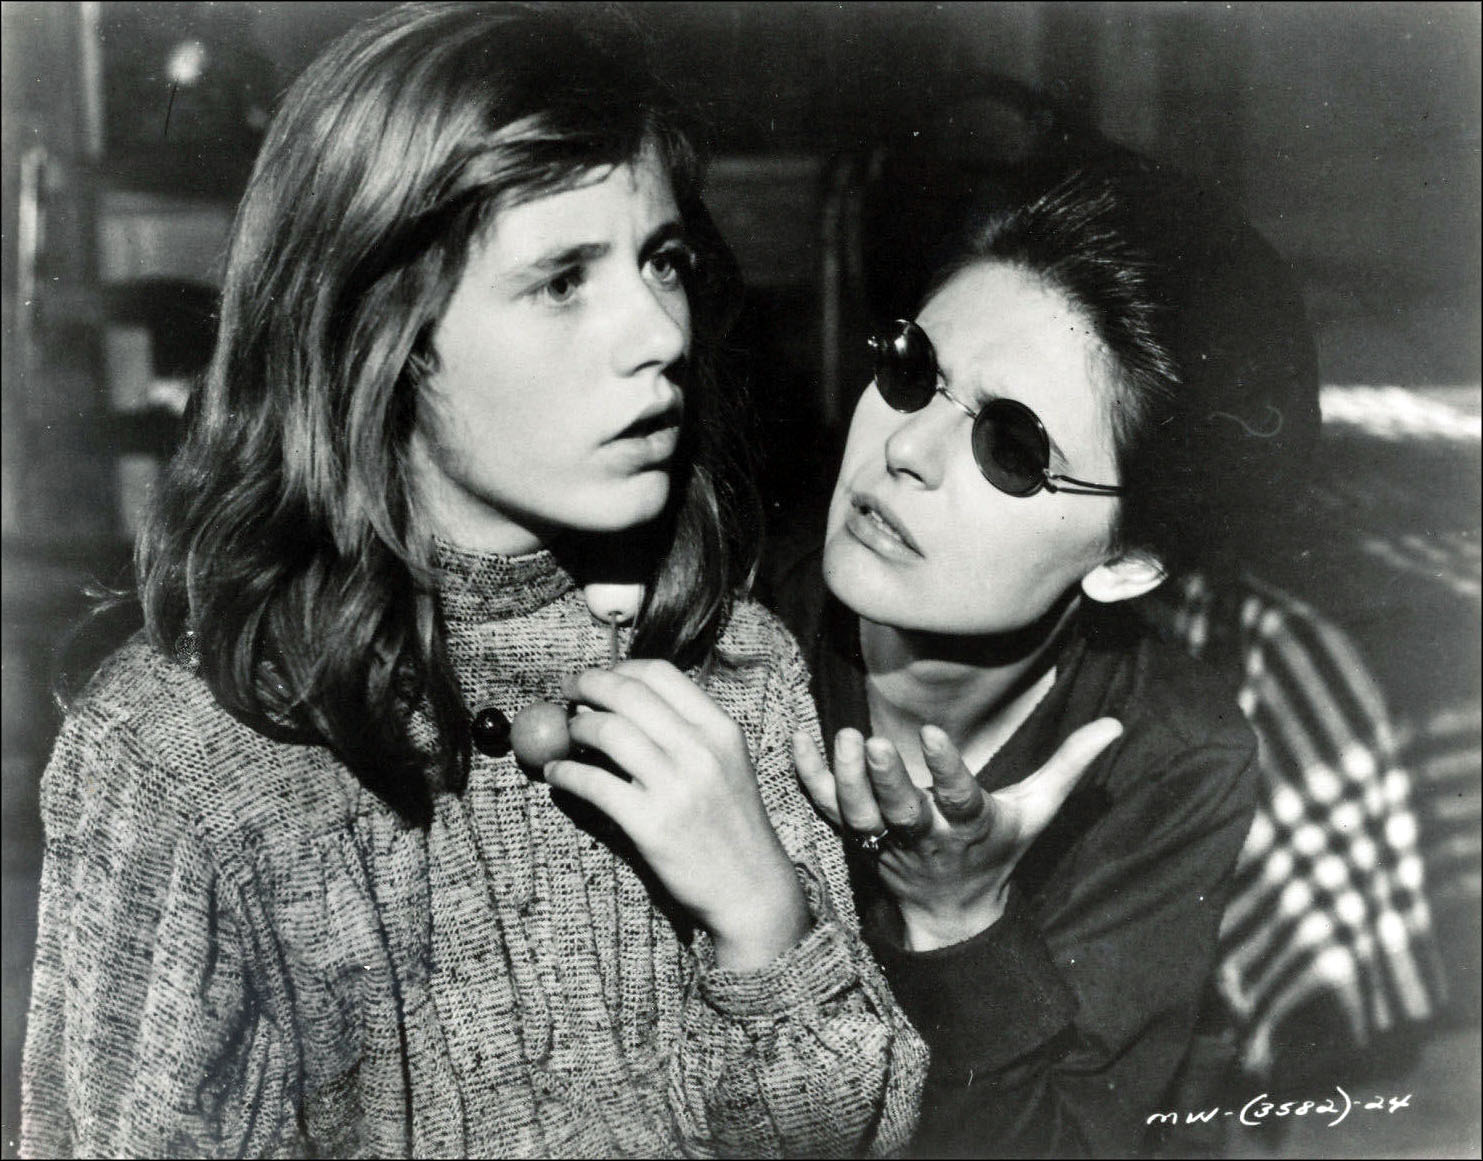 Patty Duke of The Miracle Worker